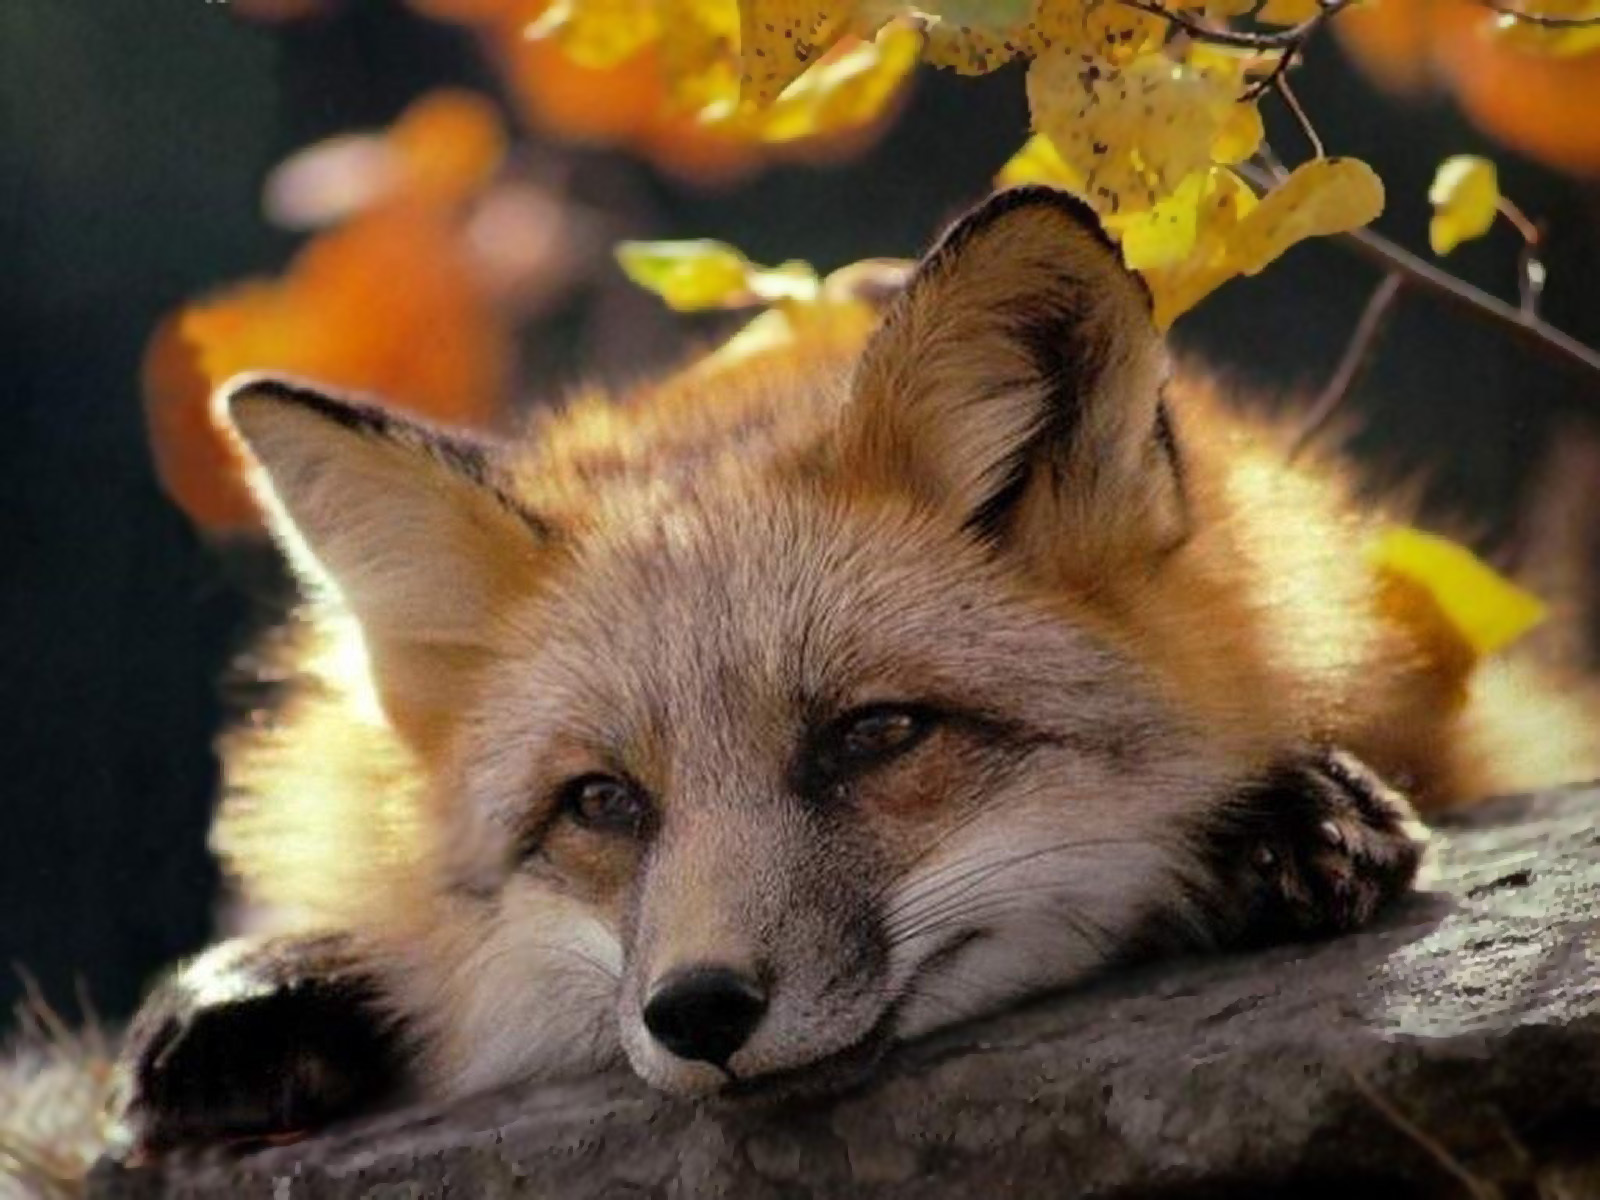 21110 download wallpaper Animals, Fox screensavers and pictures for free